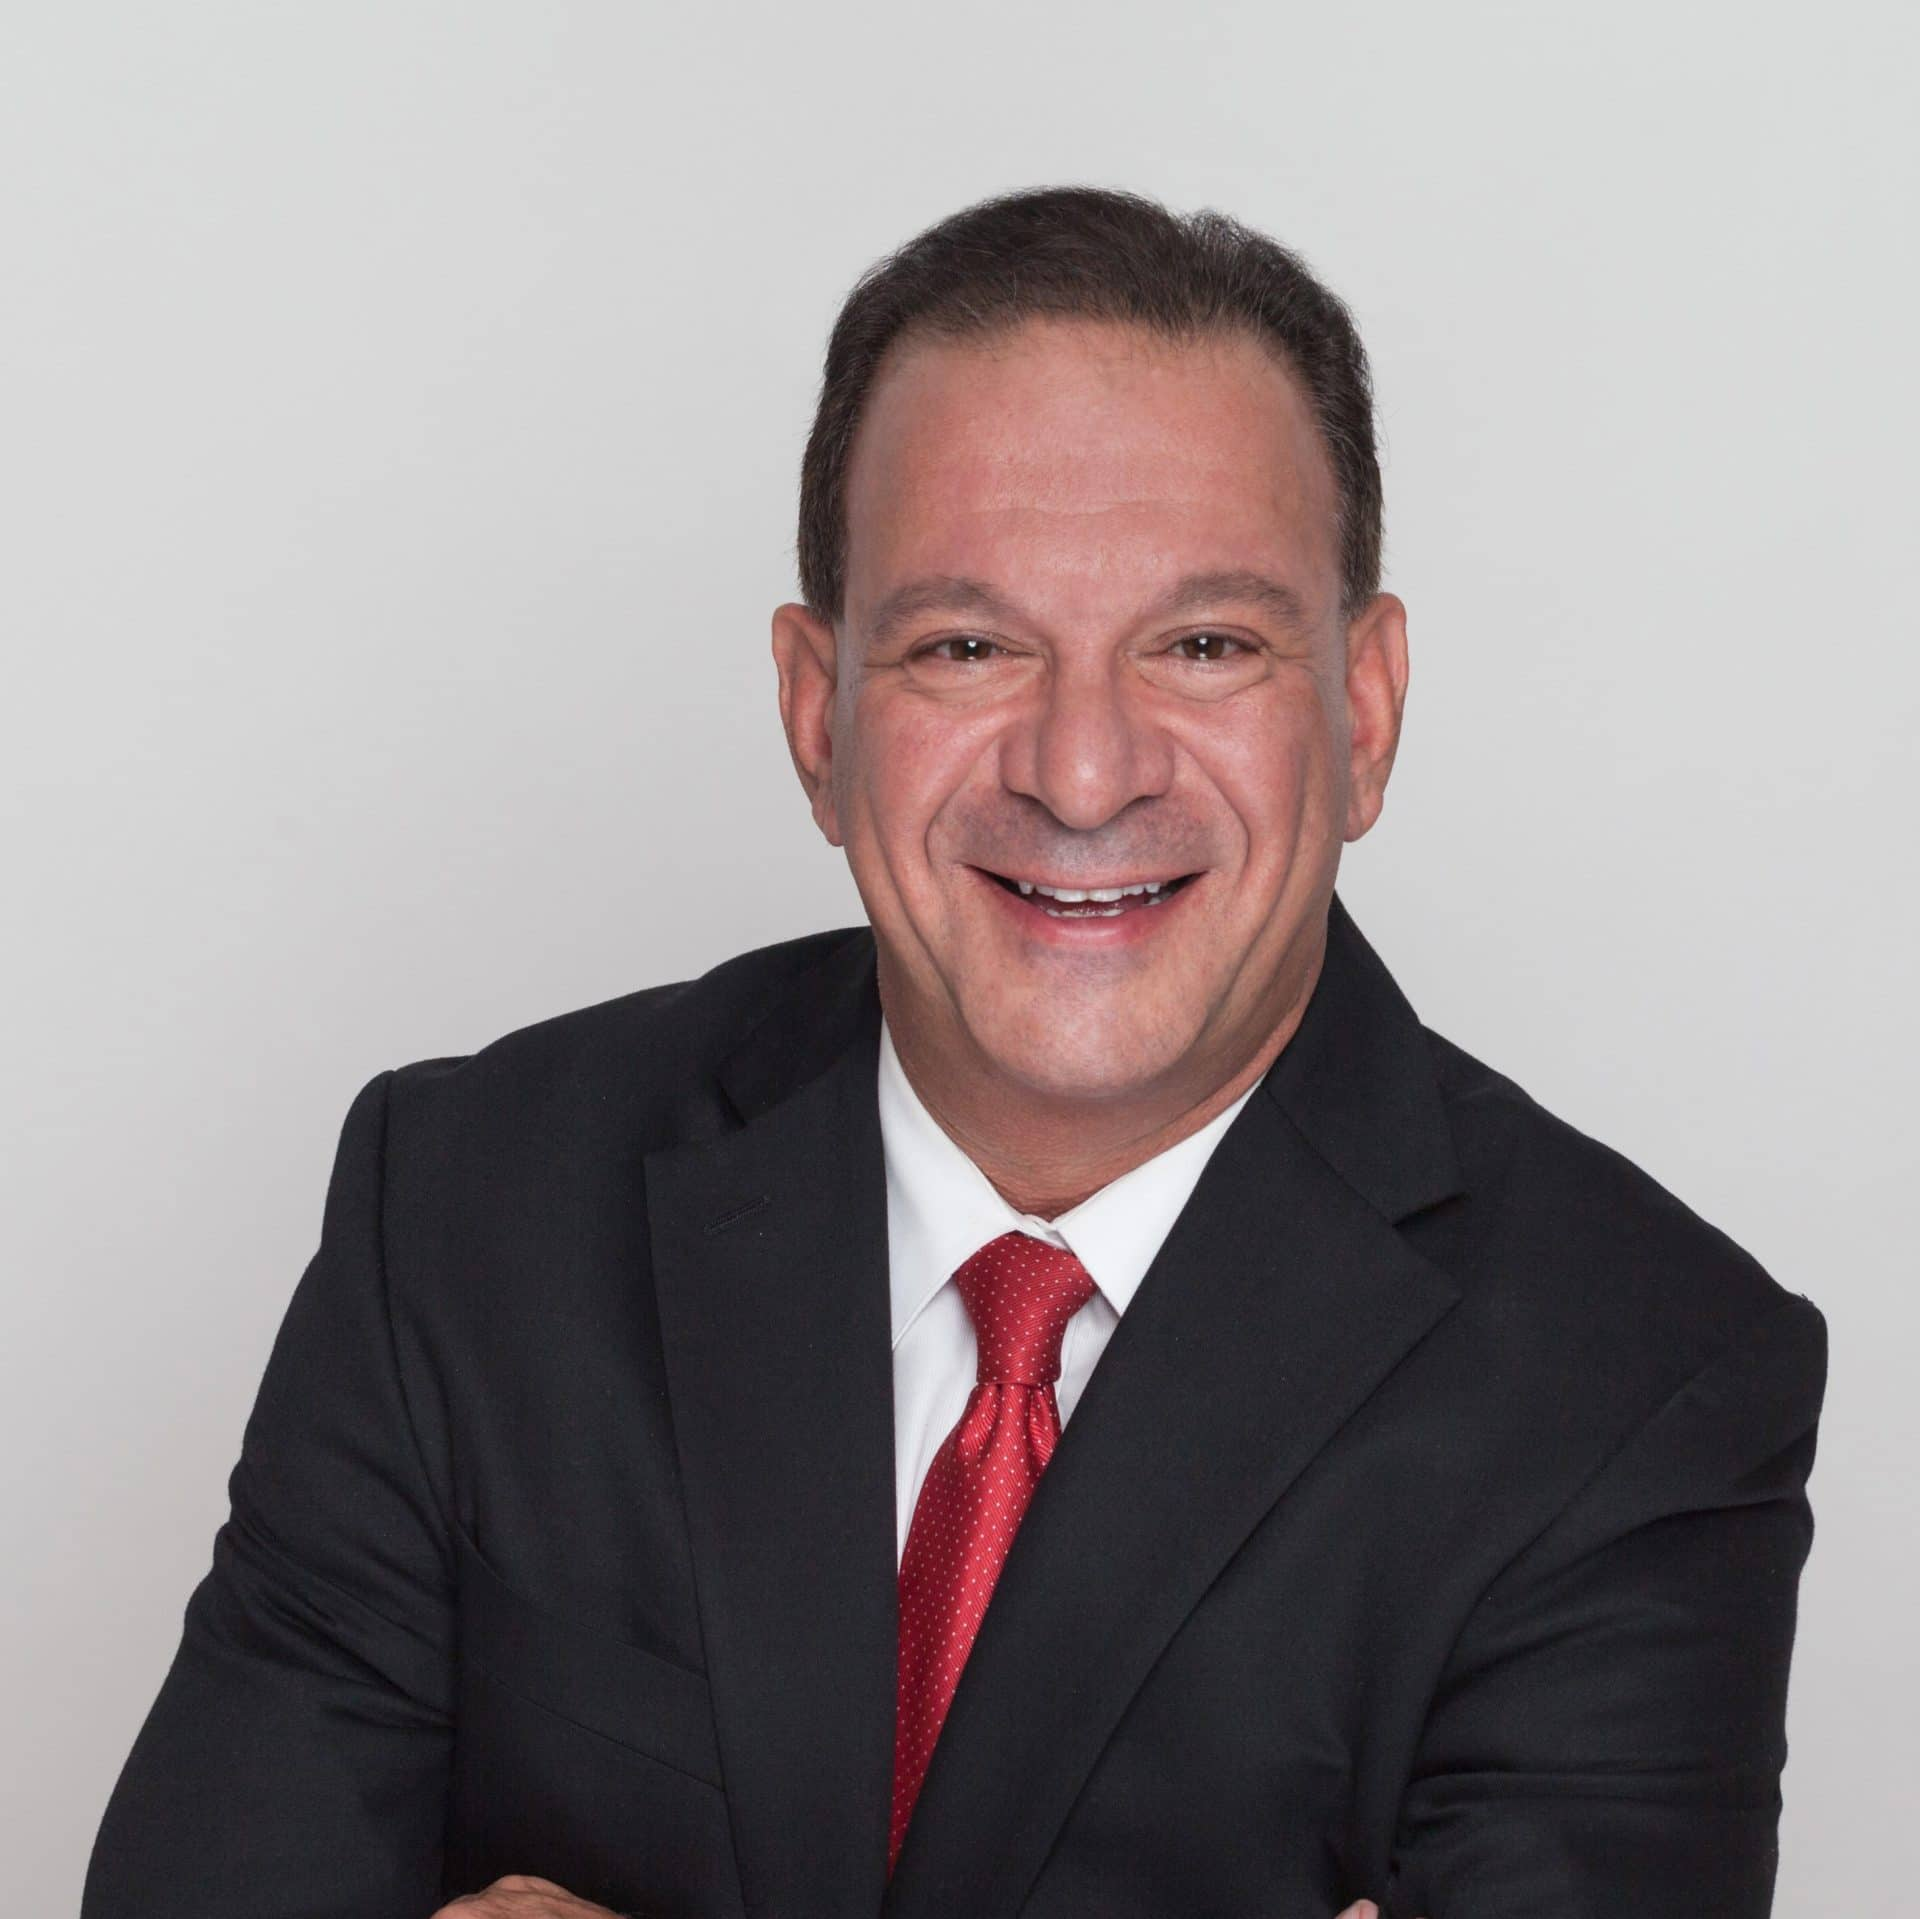 Speaker Rick Goodman - Doctor, Author, and Team Building Expert